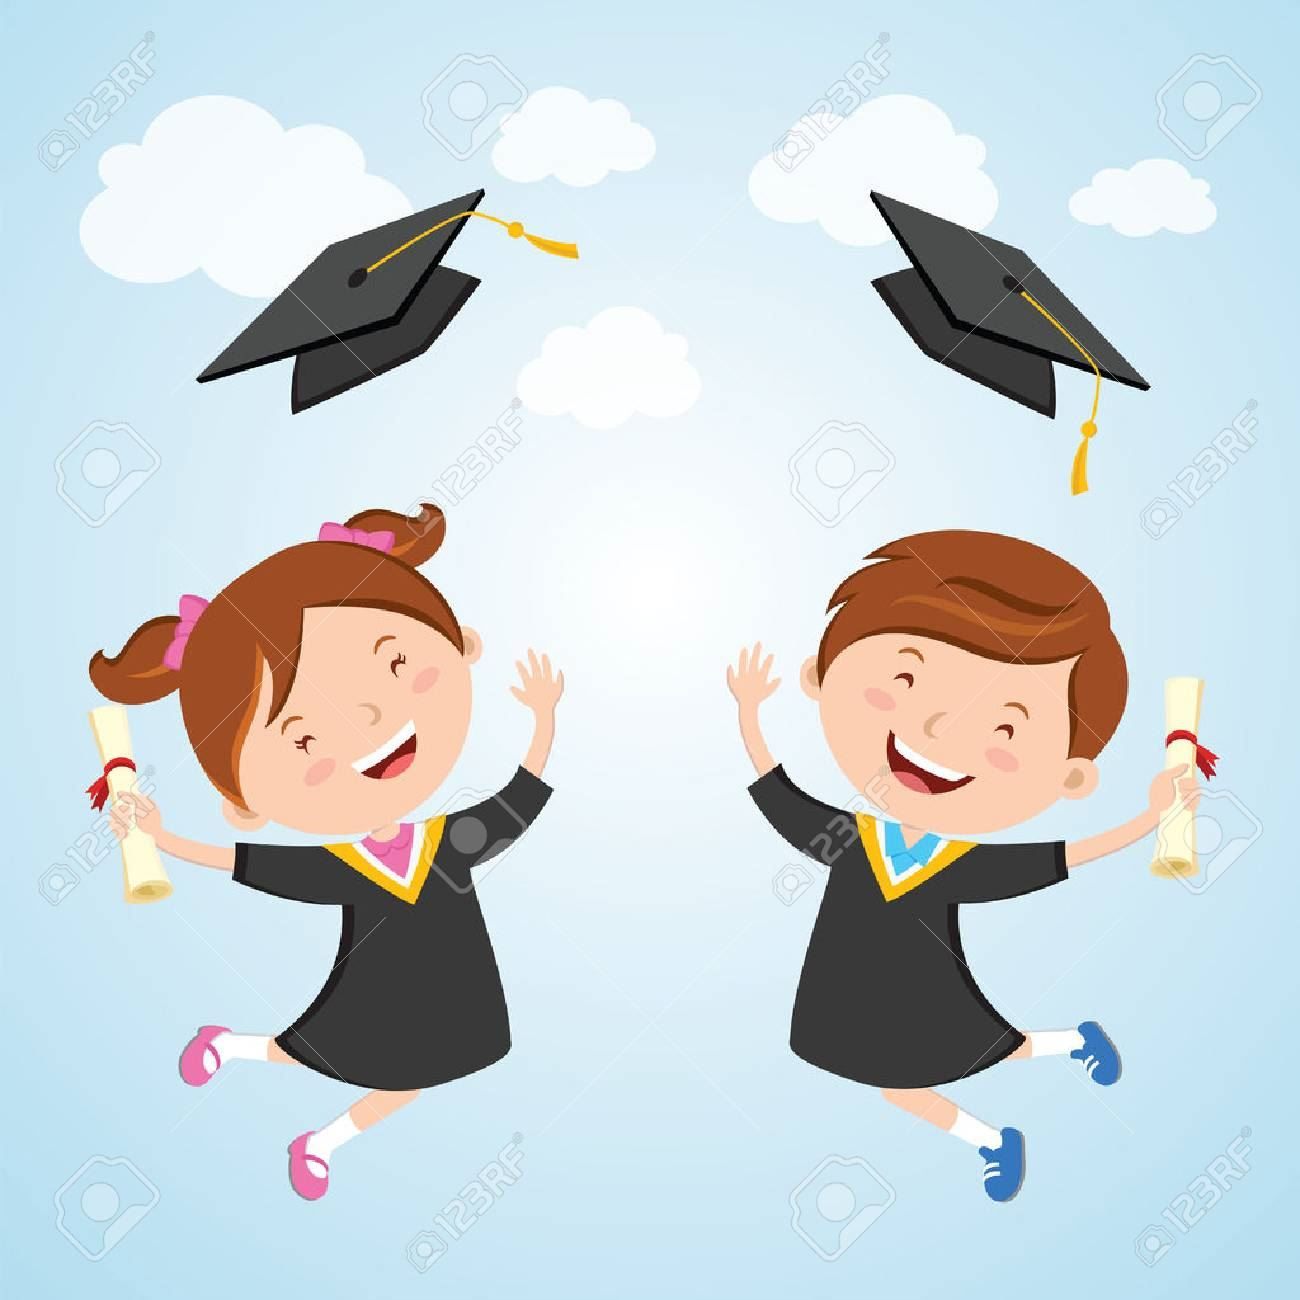 Kindergarten Graduation: Thursday, May 23 @ 8:30am